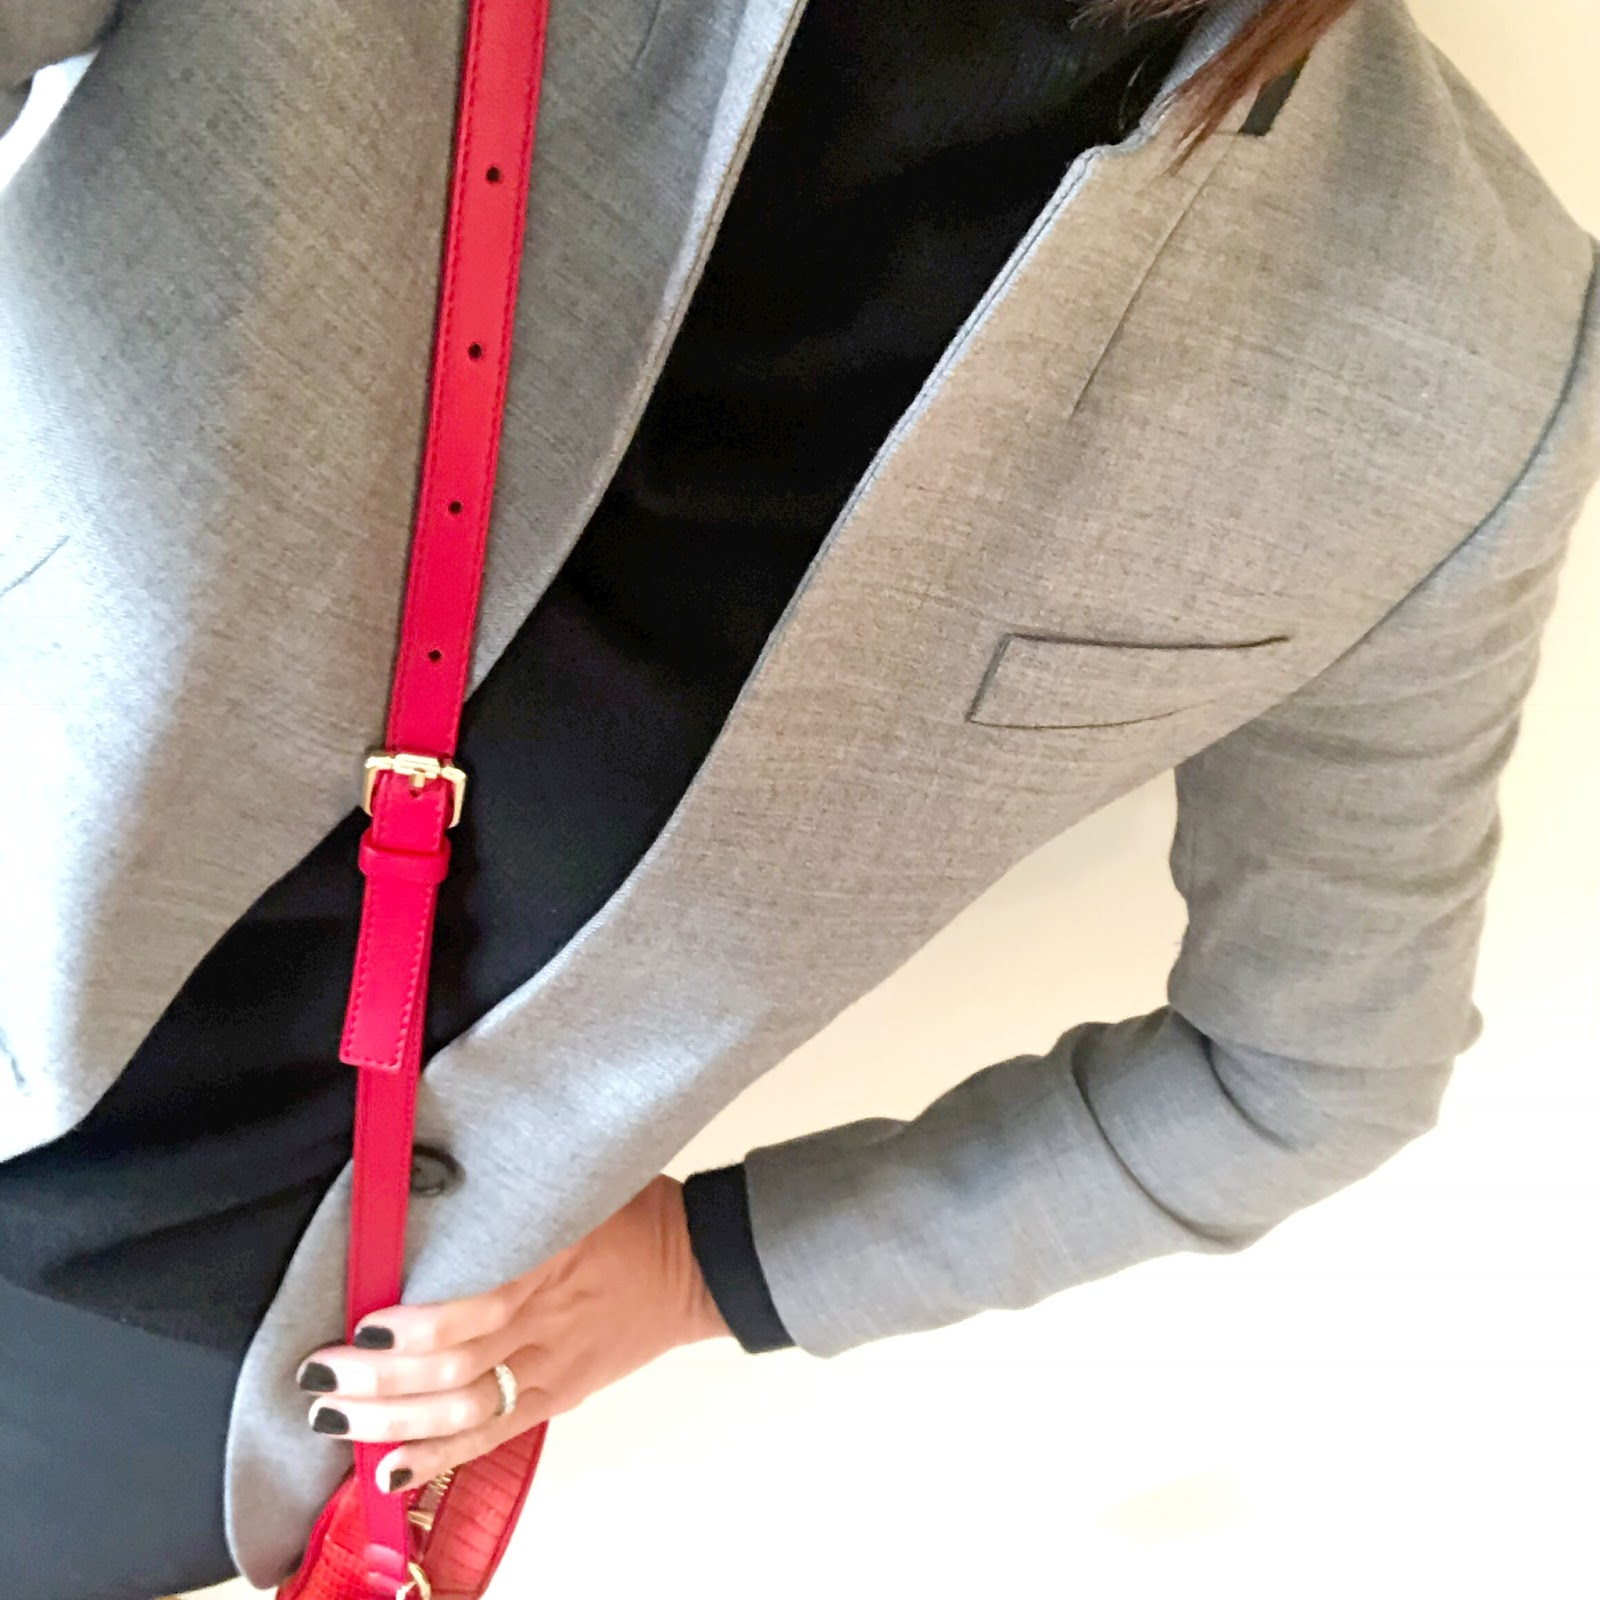 my midlife fashion, marks and spencer pure cashmere roll neck jumper, j crew regent blazer, uterque mock croc crossbody bag, j crew camerson slim fit pants, french sole henrietta ballet pumps